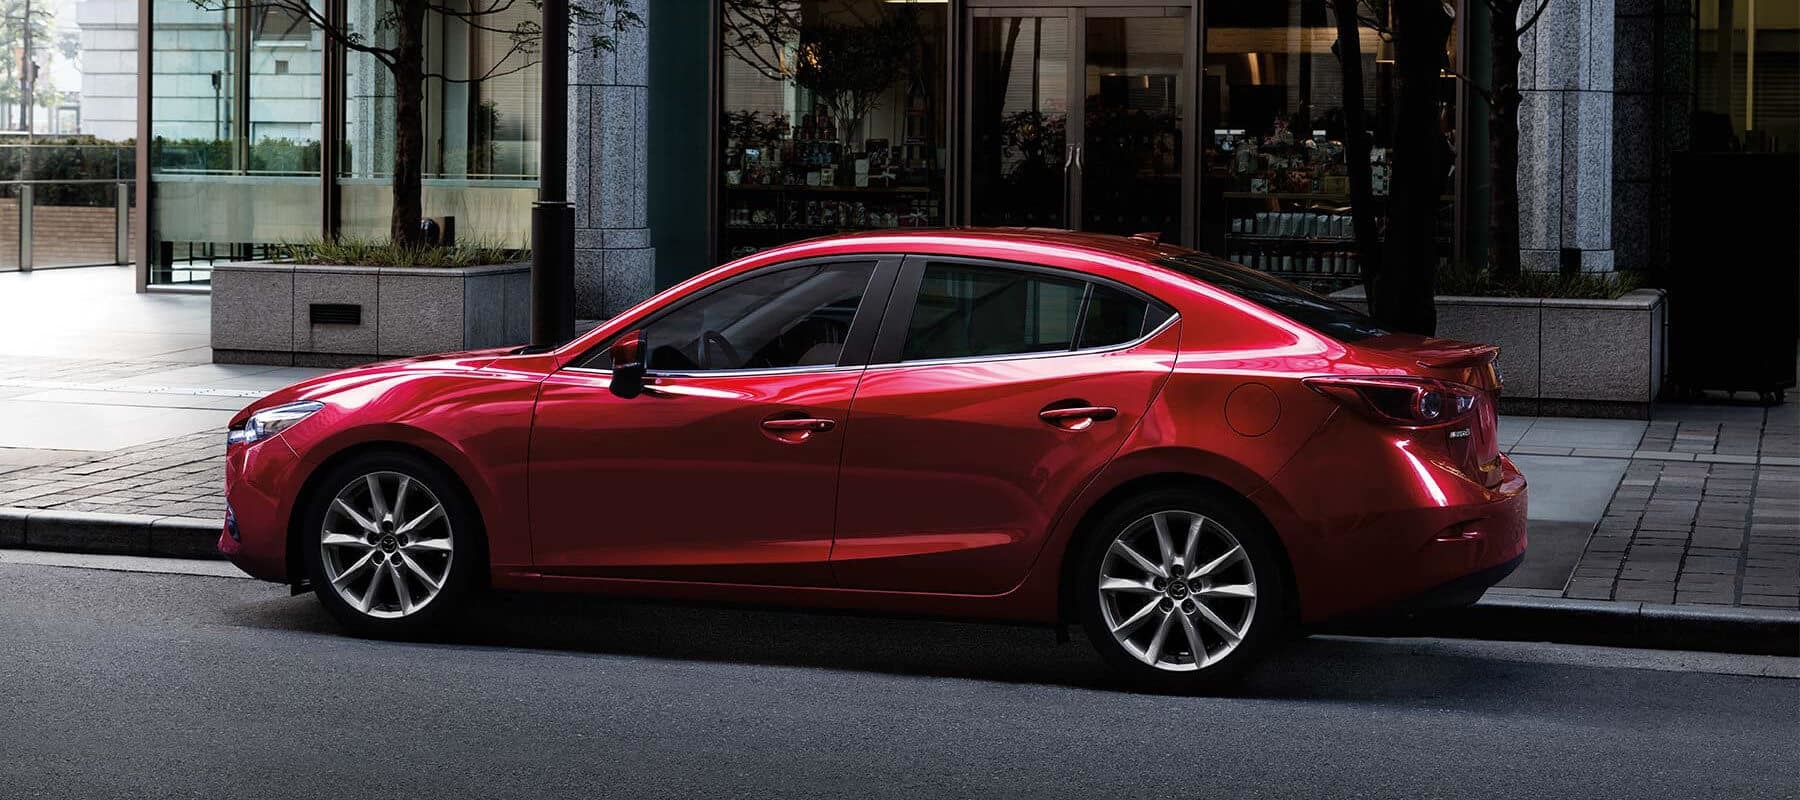 The Kelley Blue Book review notes the Mazda3's great versatility for the price.